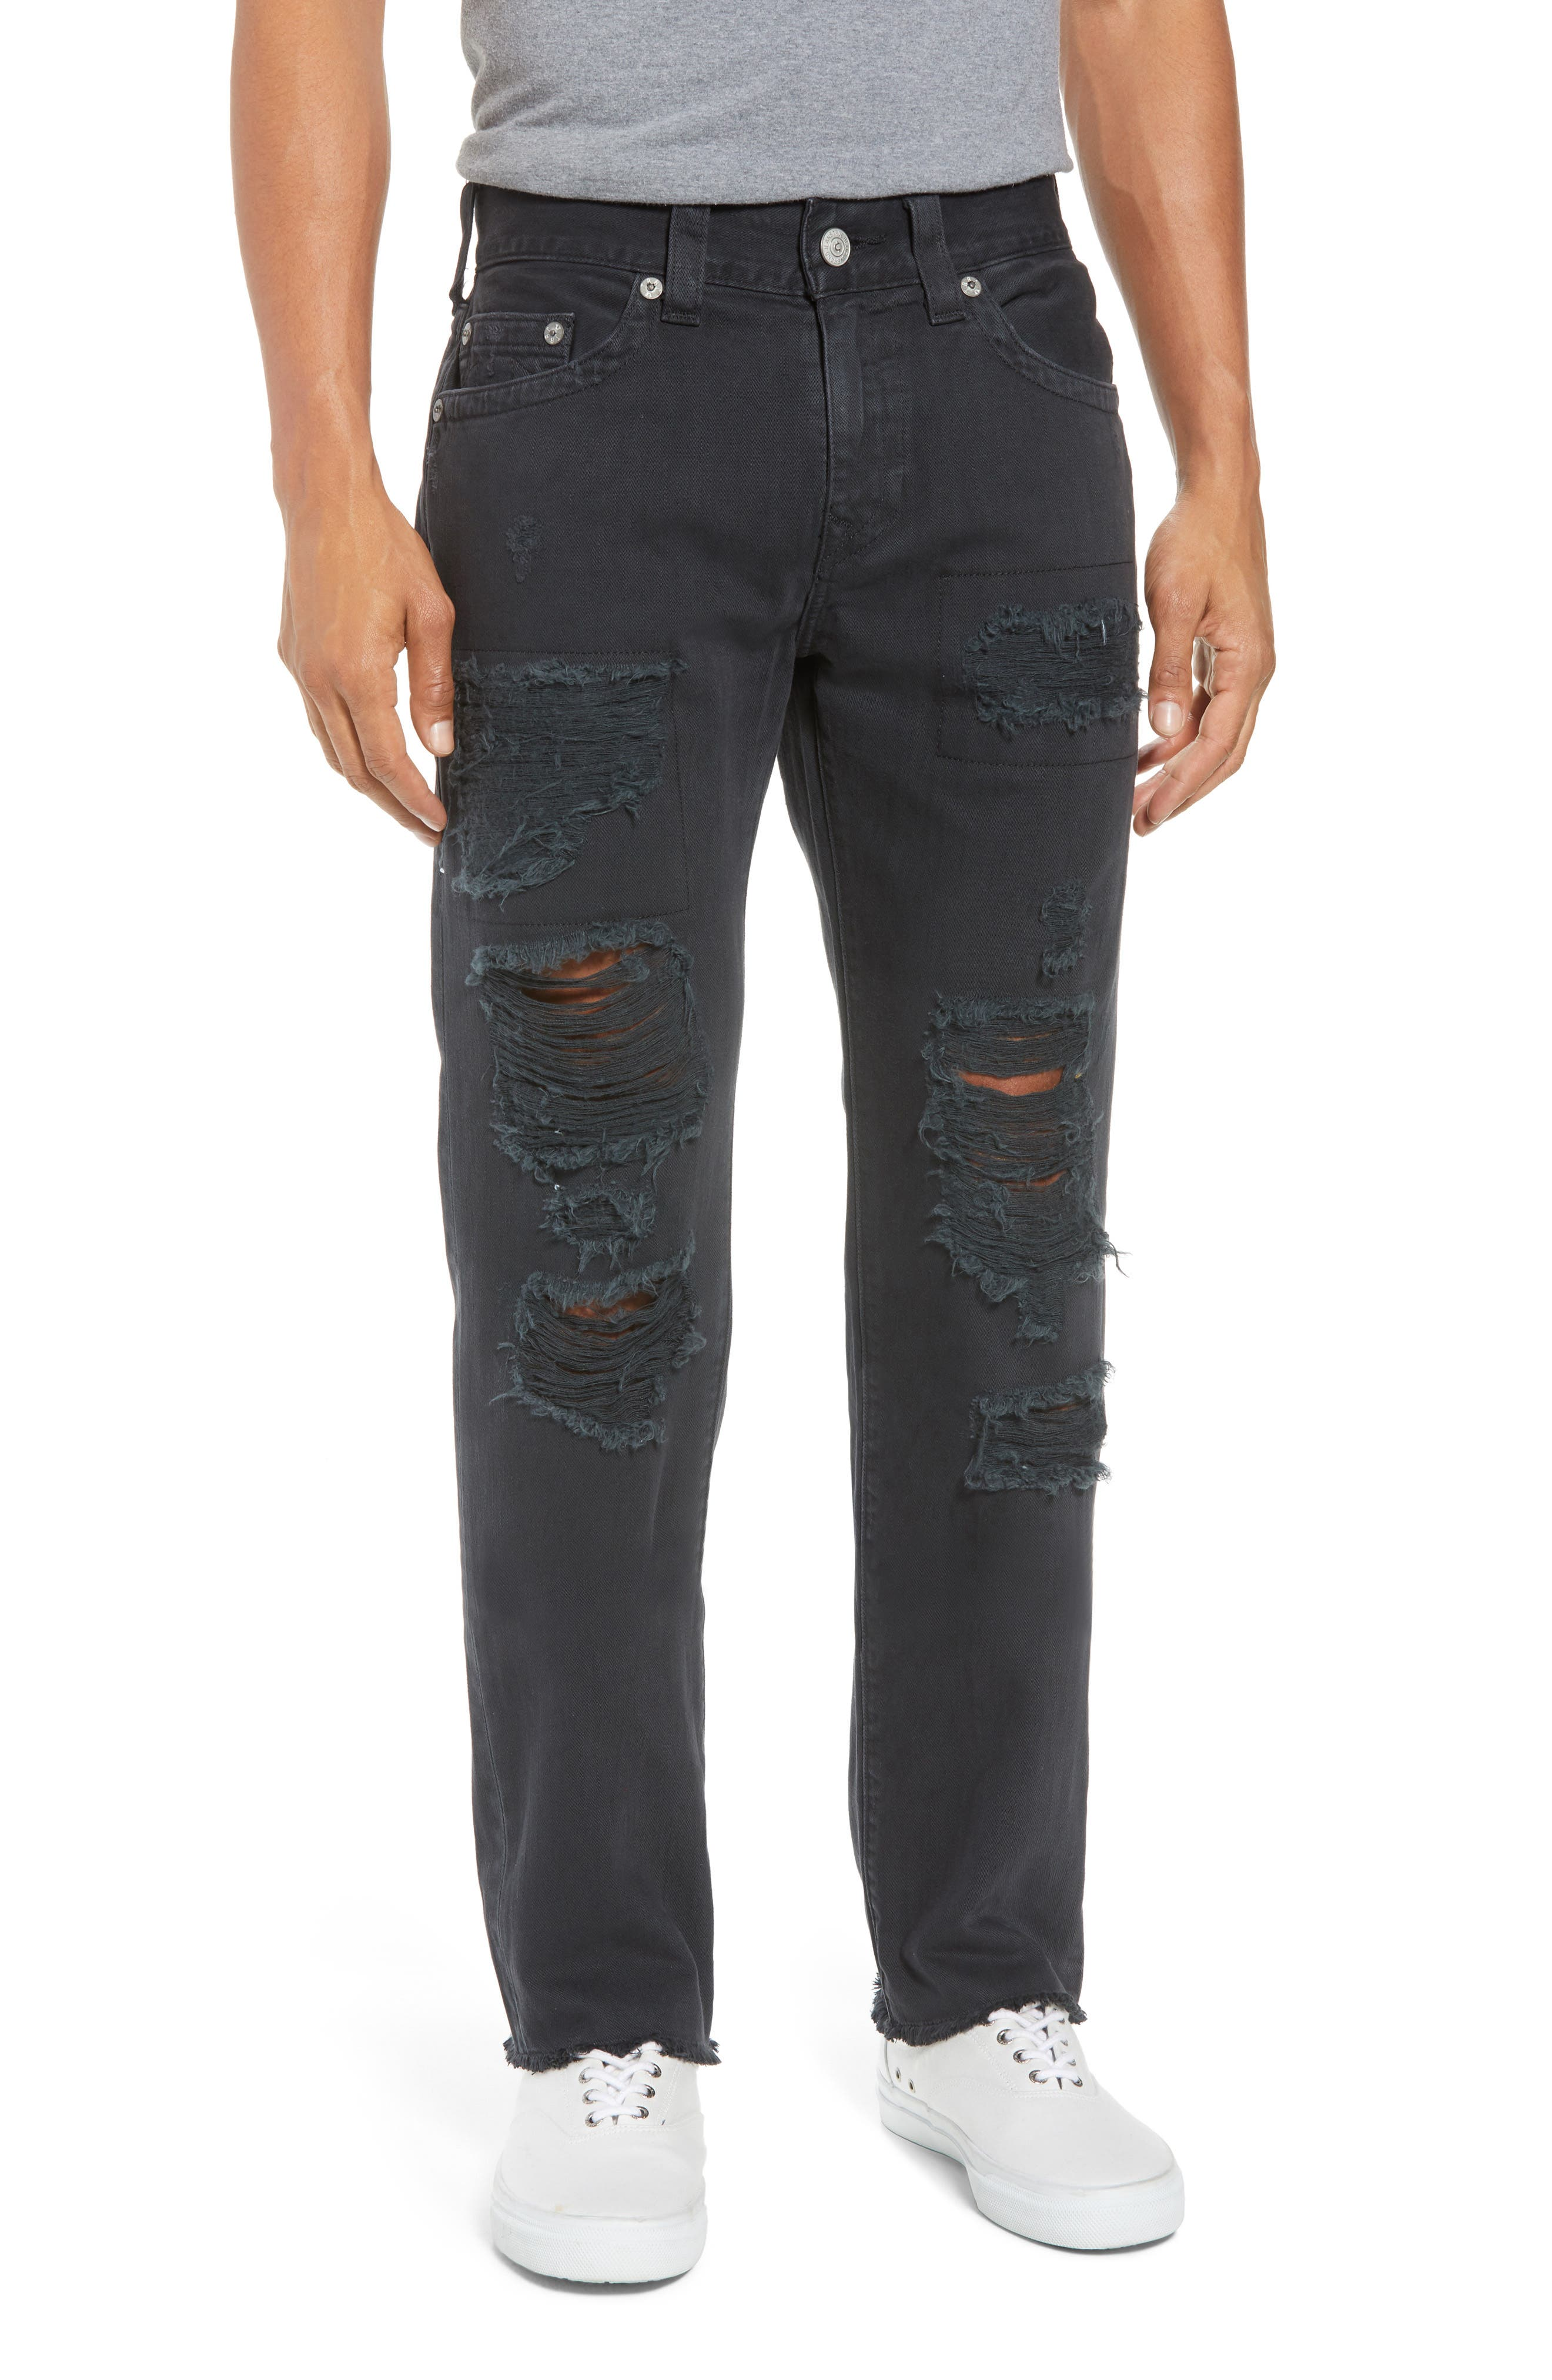 Rocco Skinny Fit Jeans,                         Main,                         color, Black Volcanic Ash